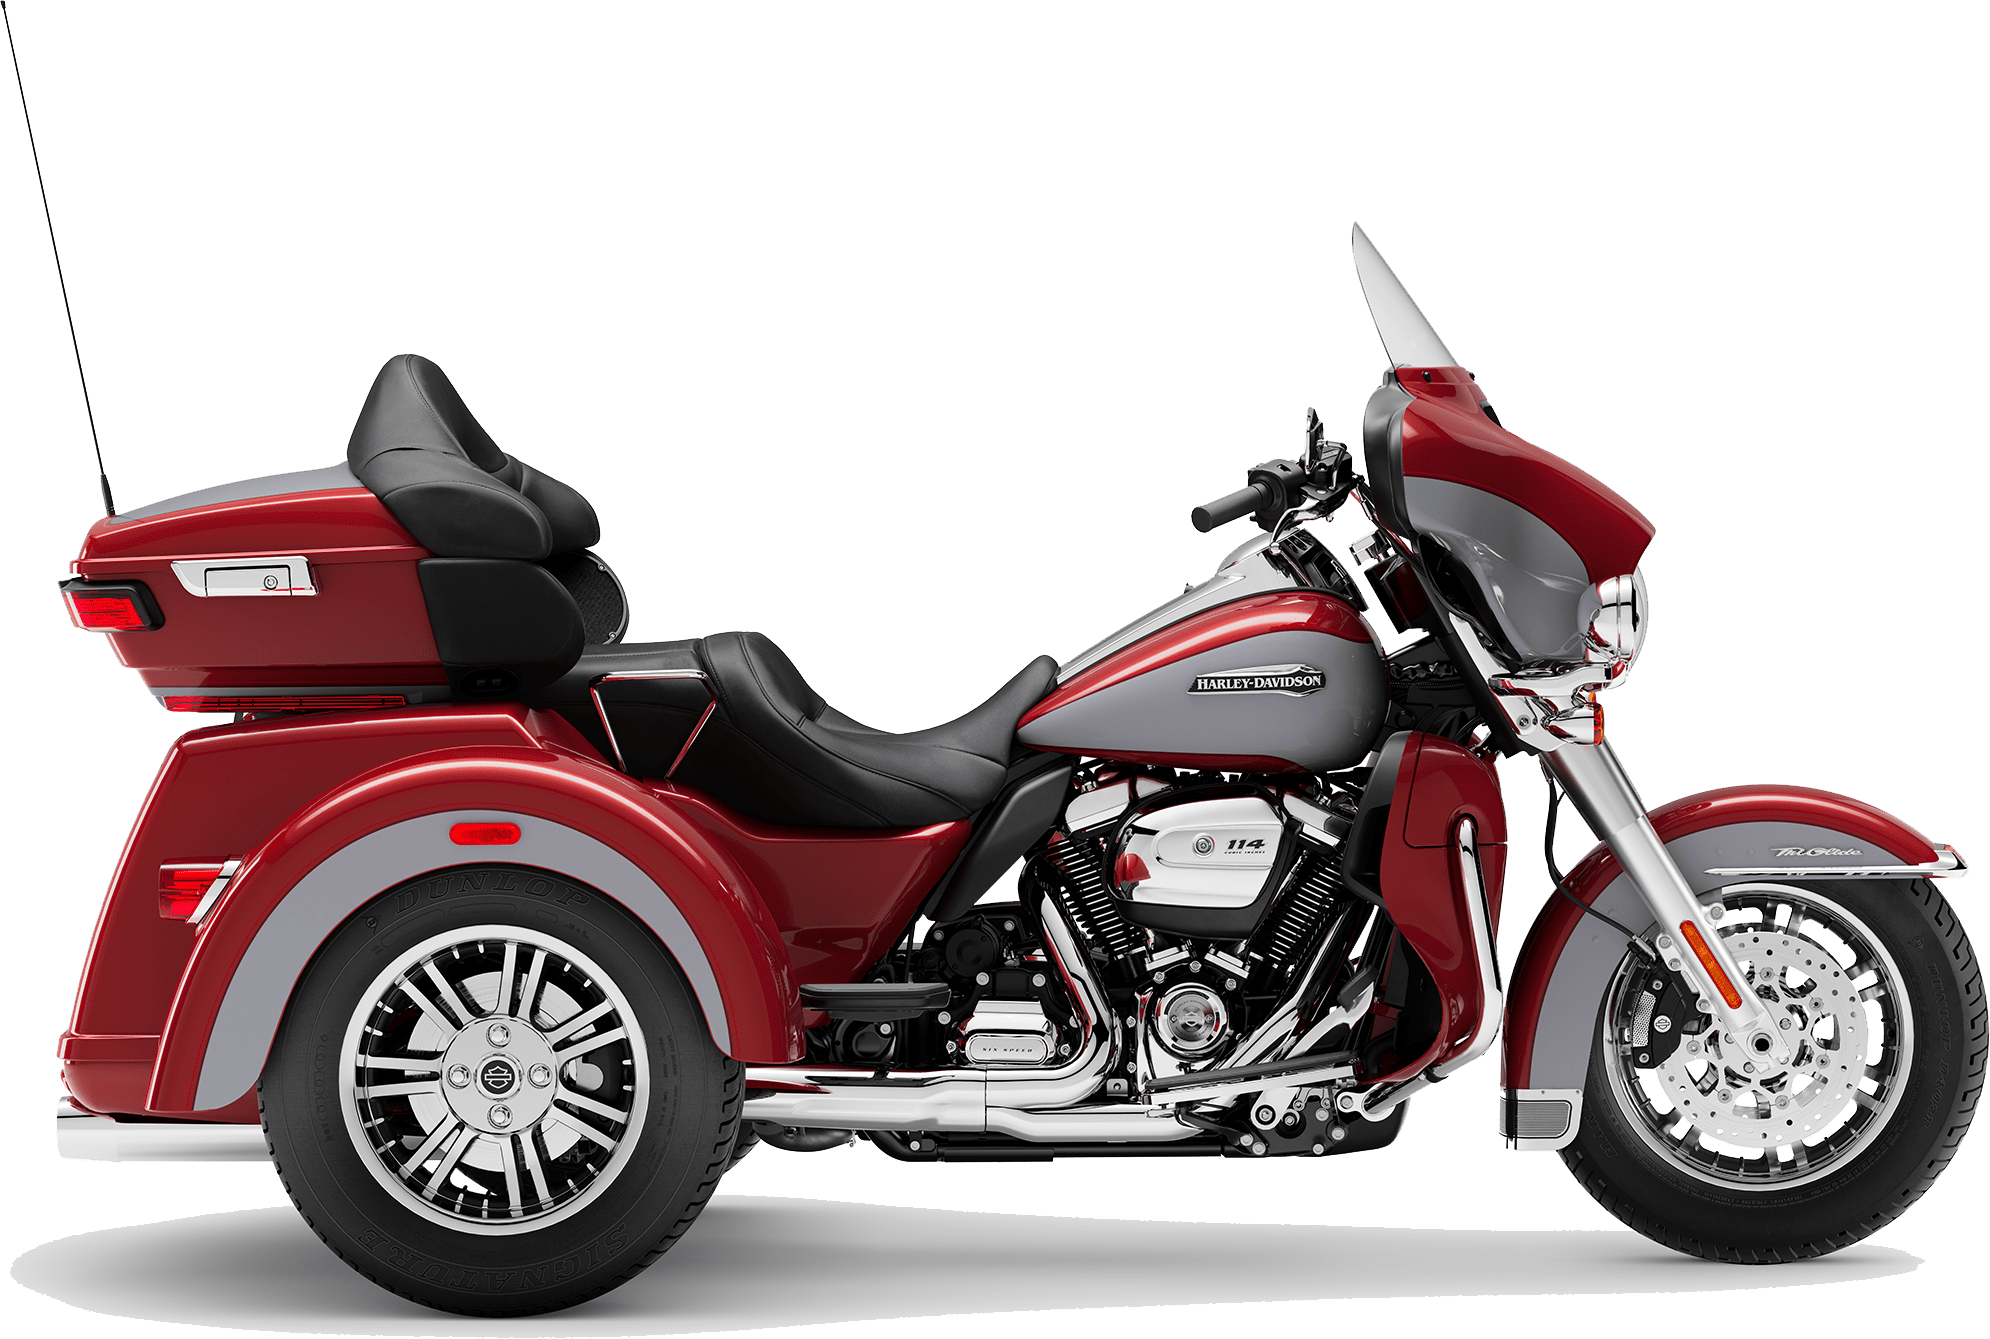 2019 Harley-Davidson Tri-Glide Ultra Wicked Red Barracuda Silver